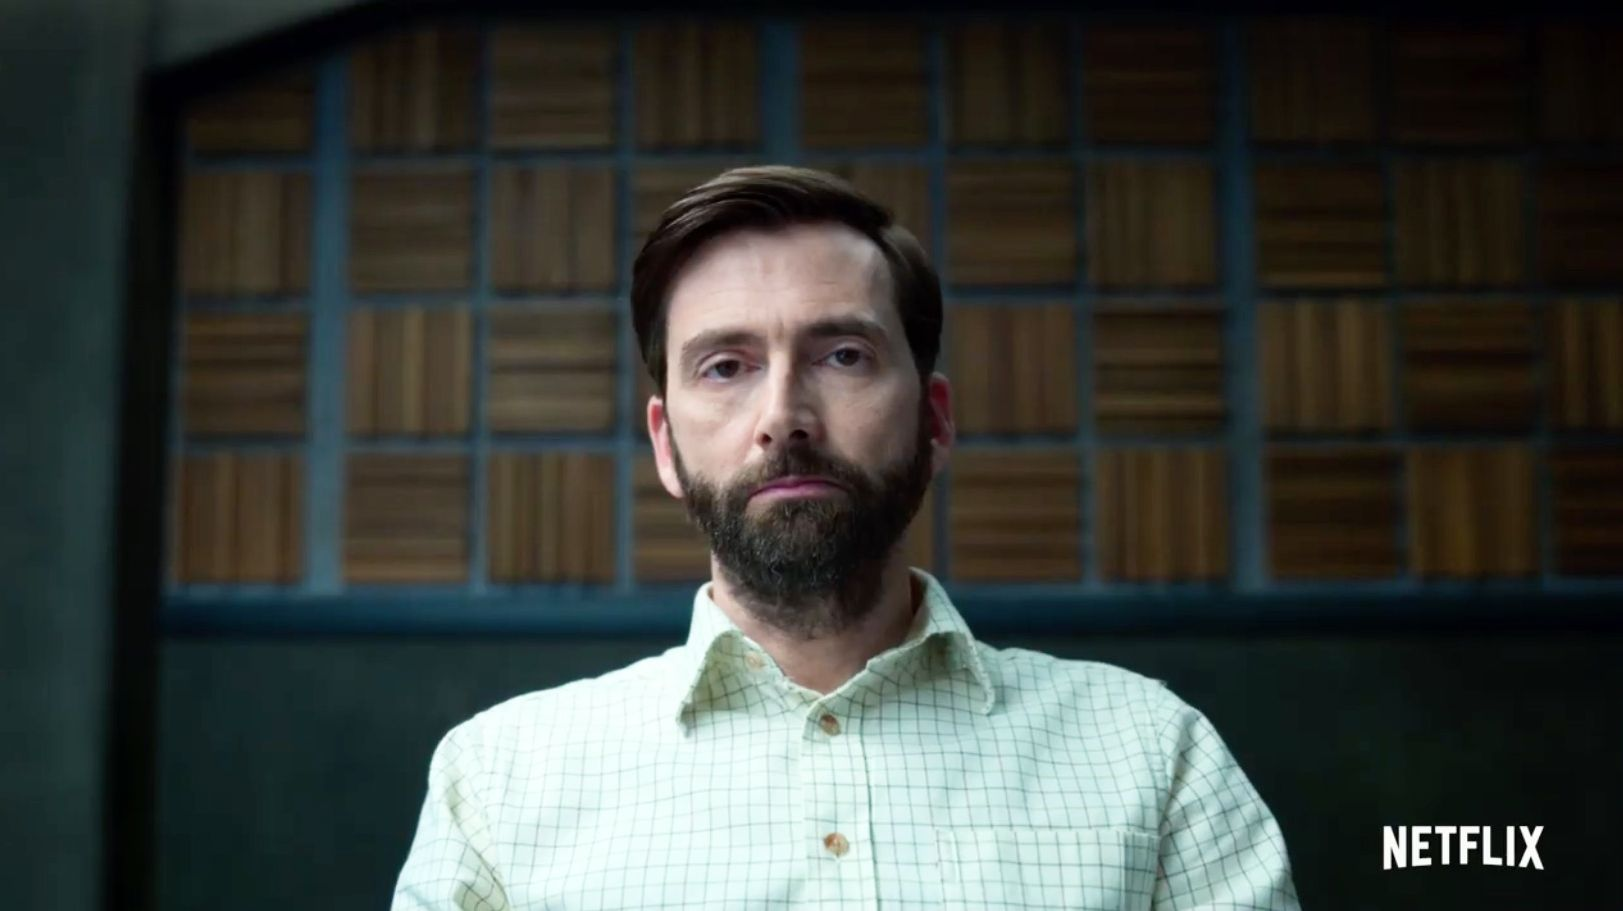 David Tennant takes centre stage in trailer for Netflix's crime drama Criminal